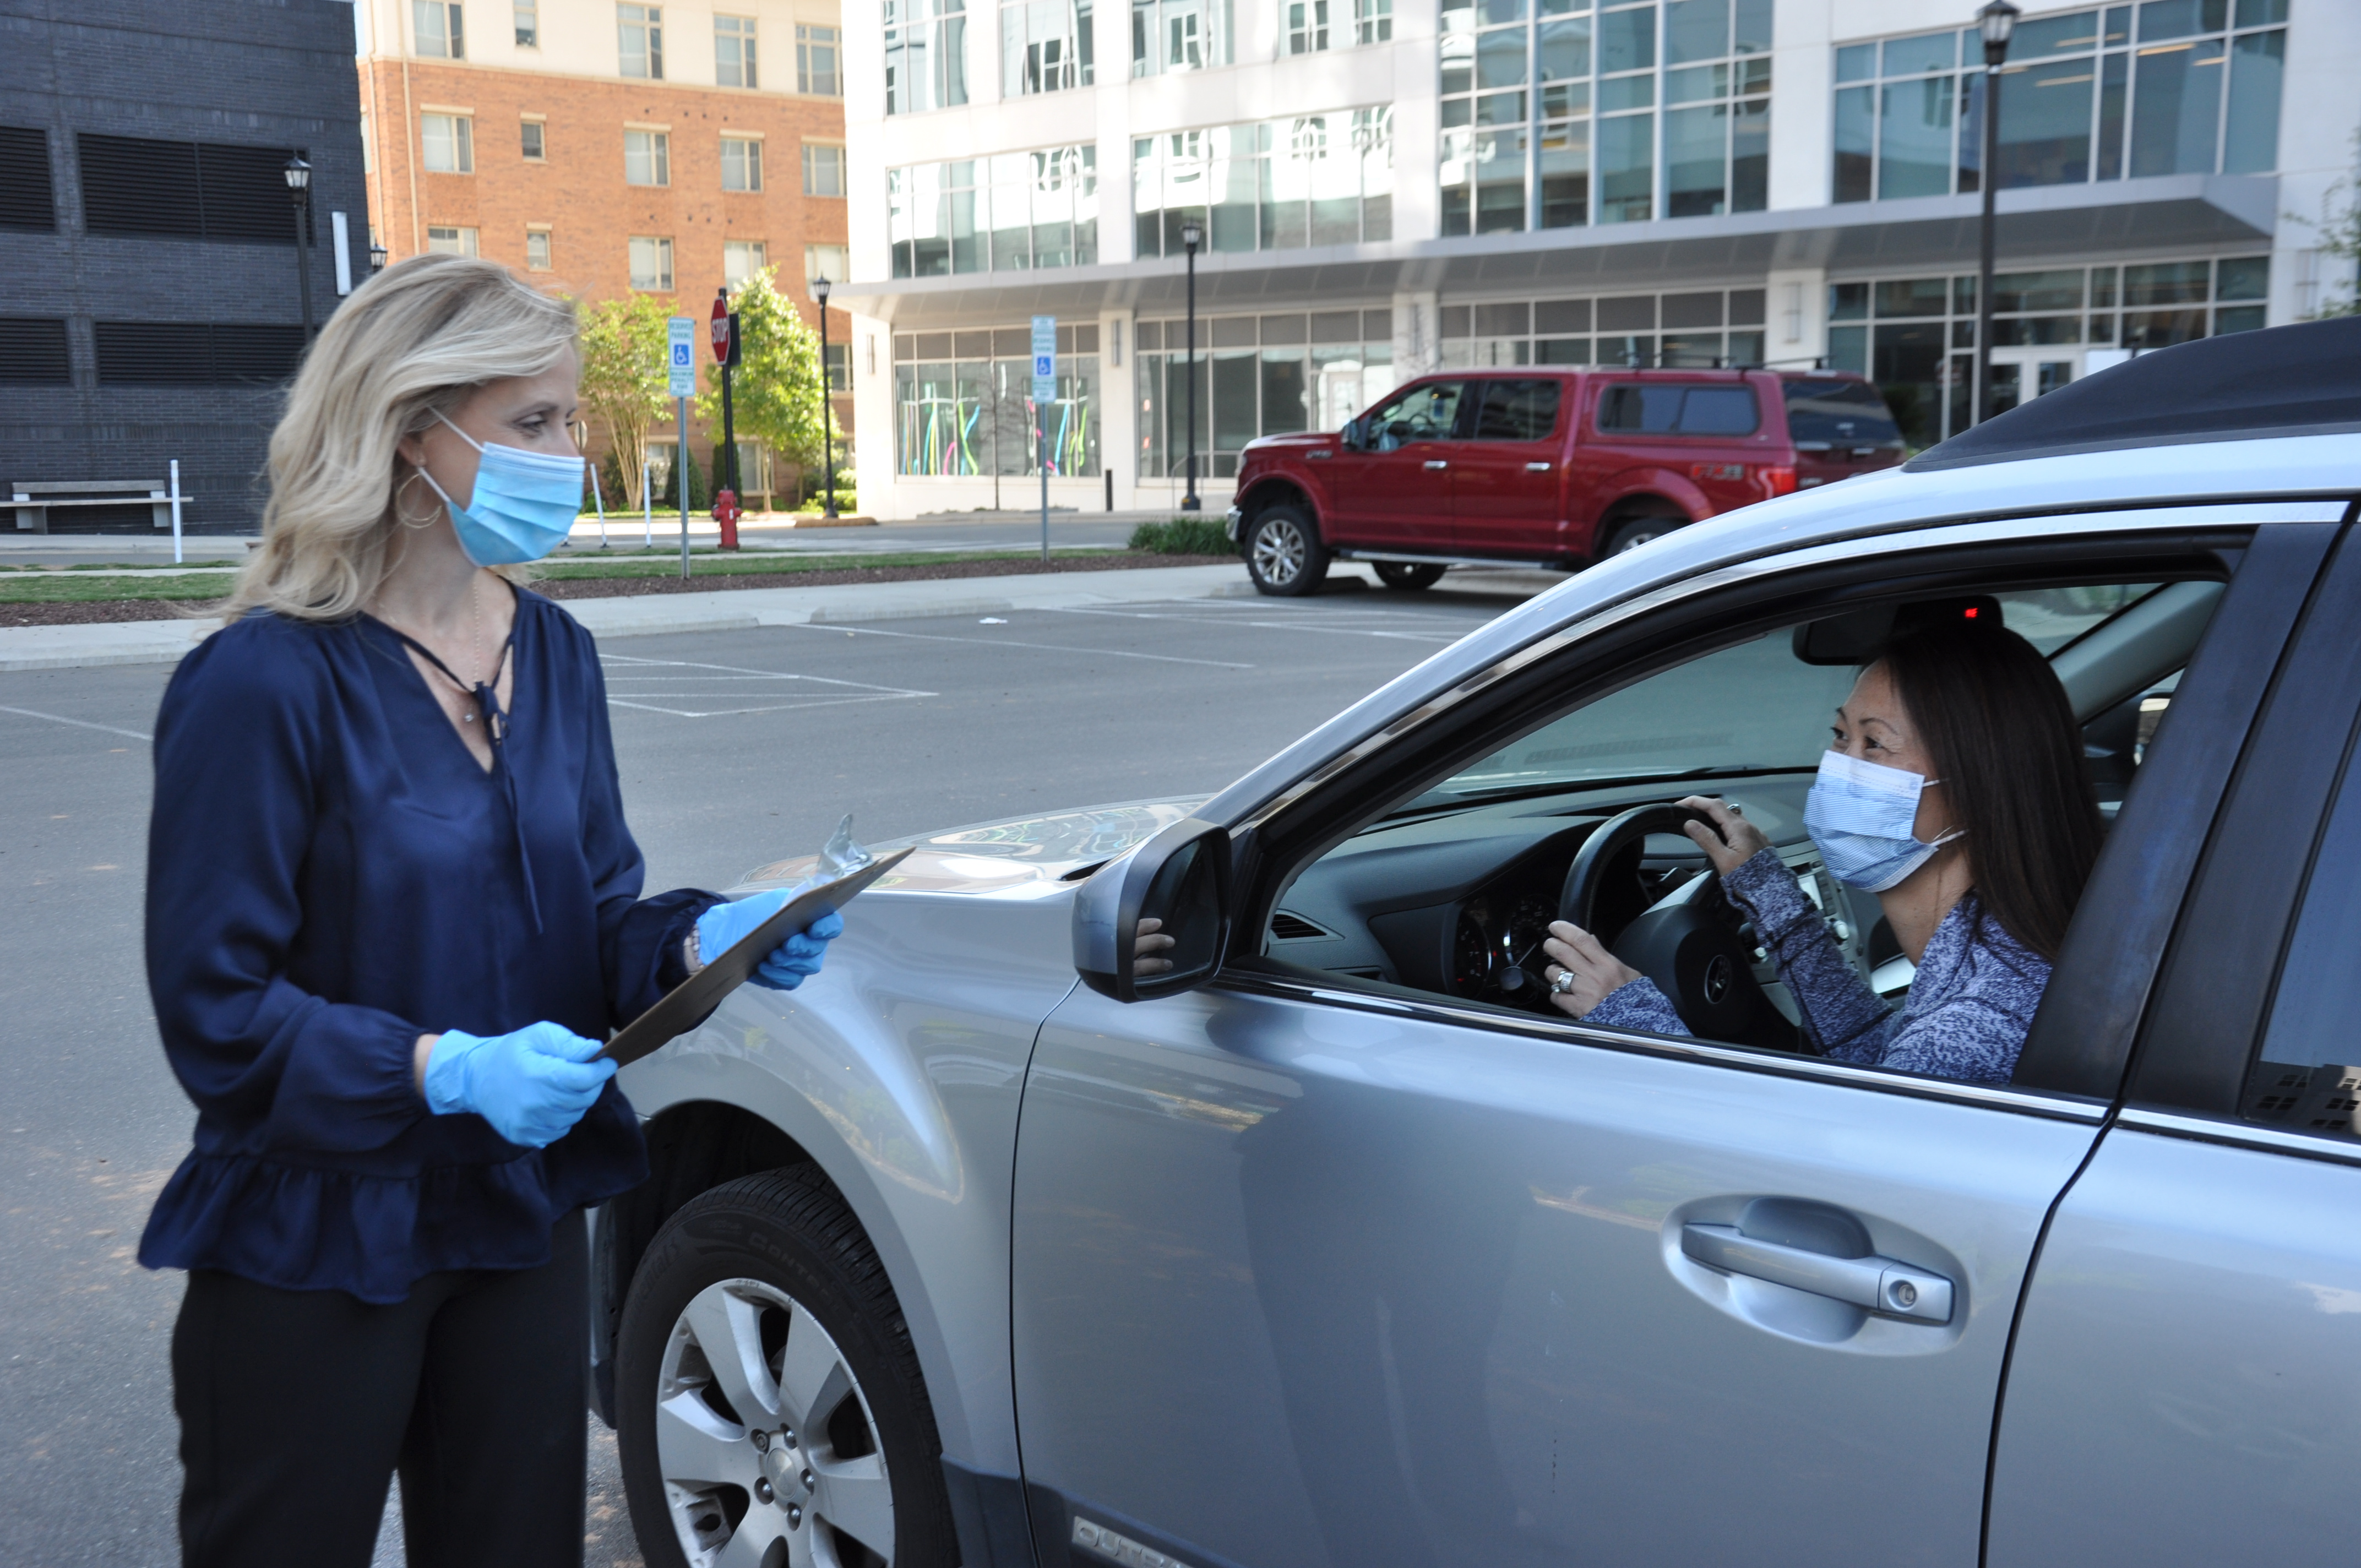 image of staff member in gloves and mask approaching patient wearing a mask in car